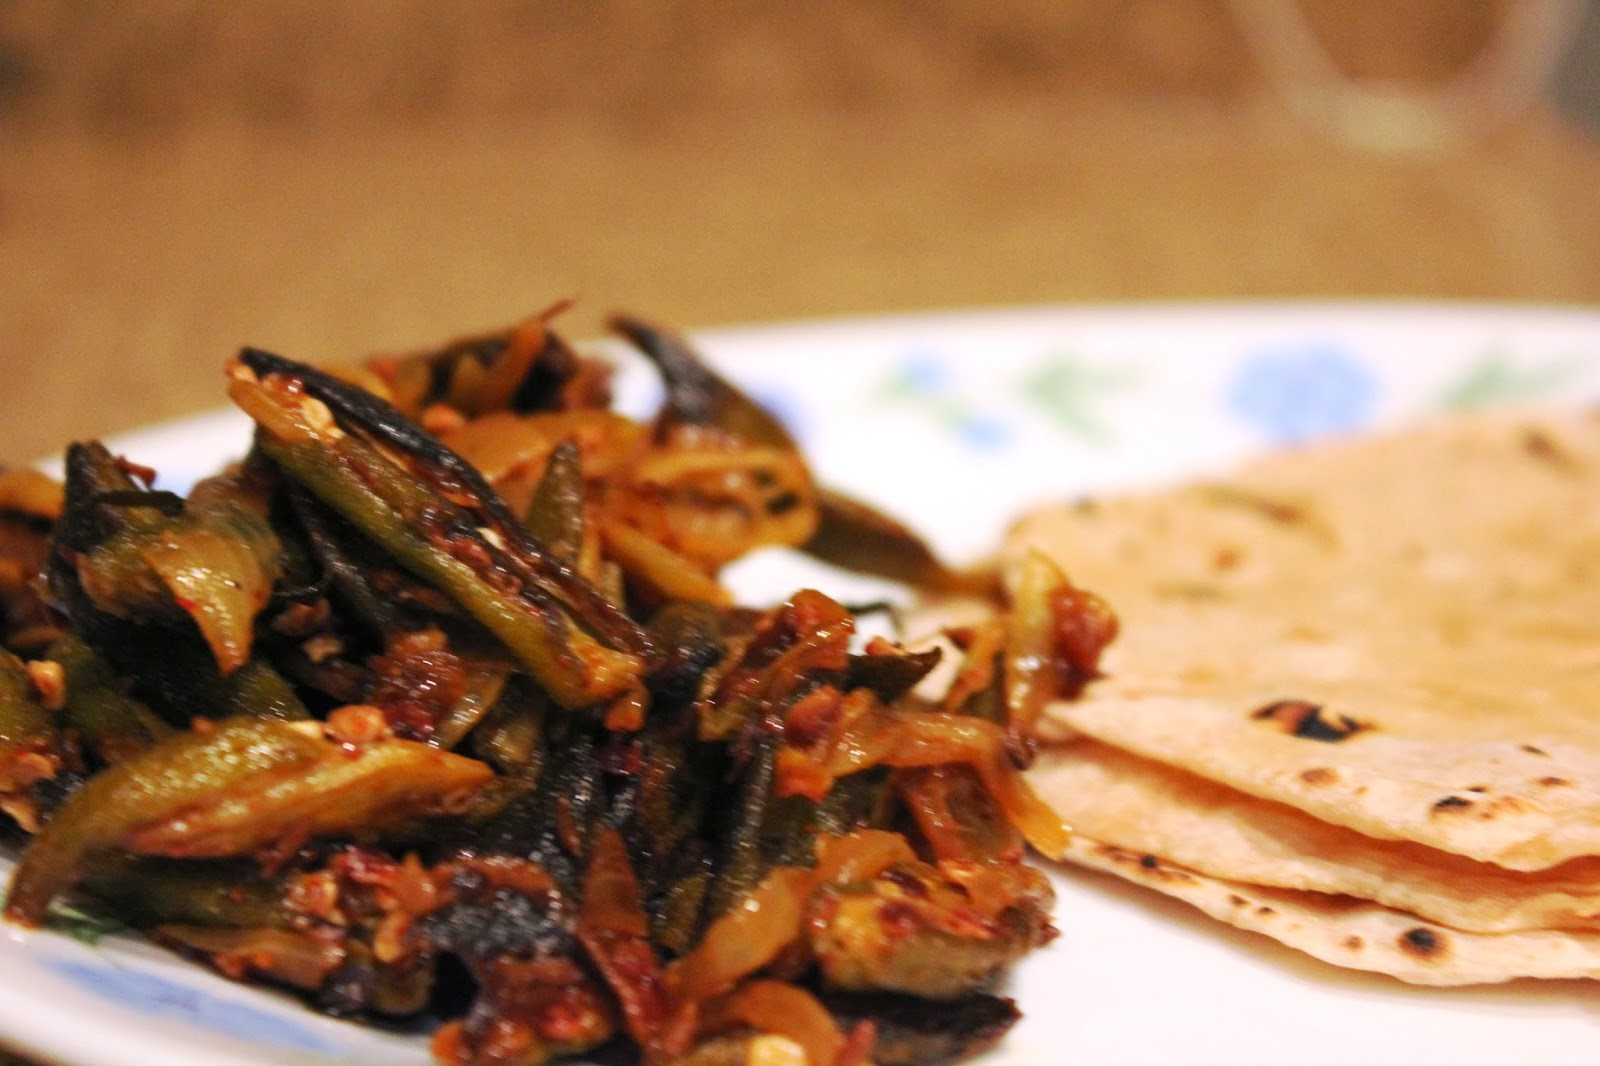 bhindi in hindi means okra and pyaz means onion in this dish onion is ...